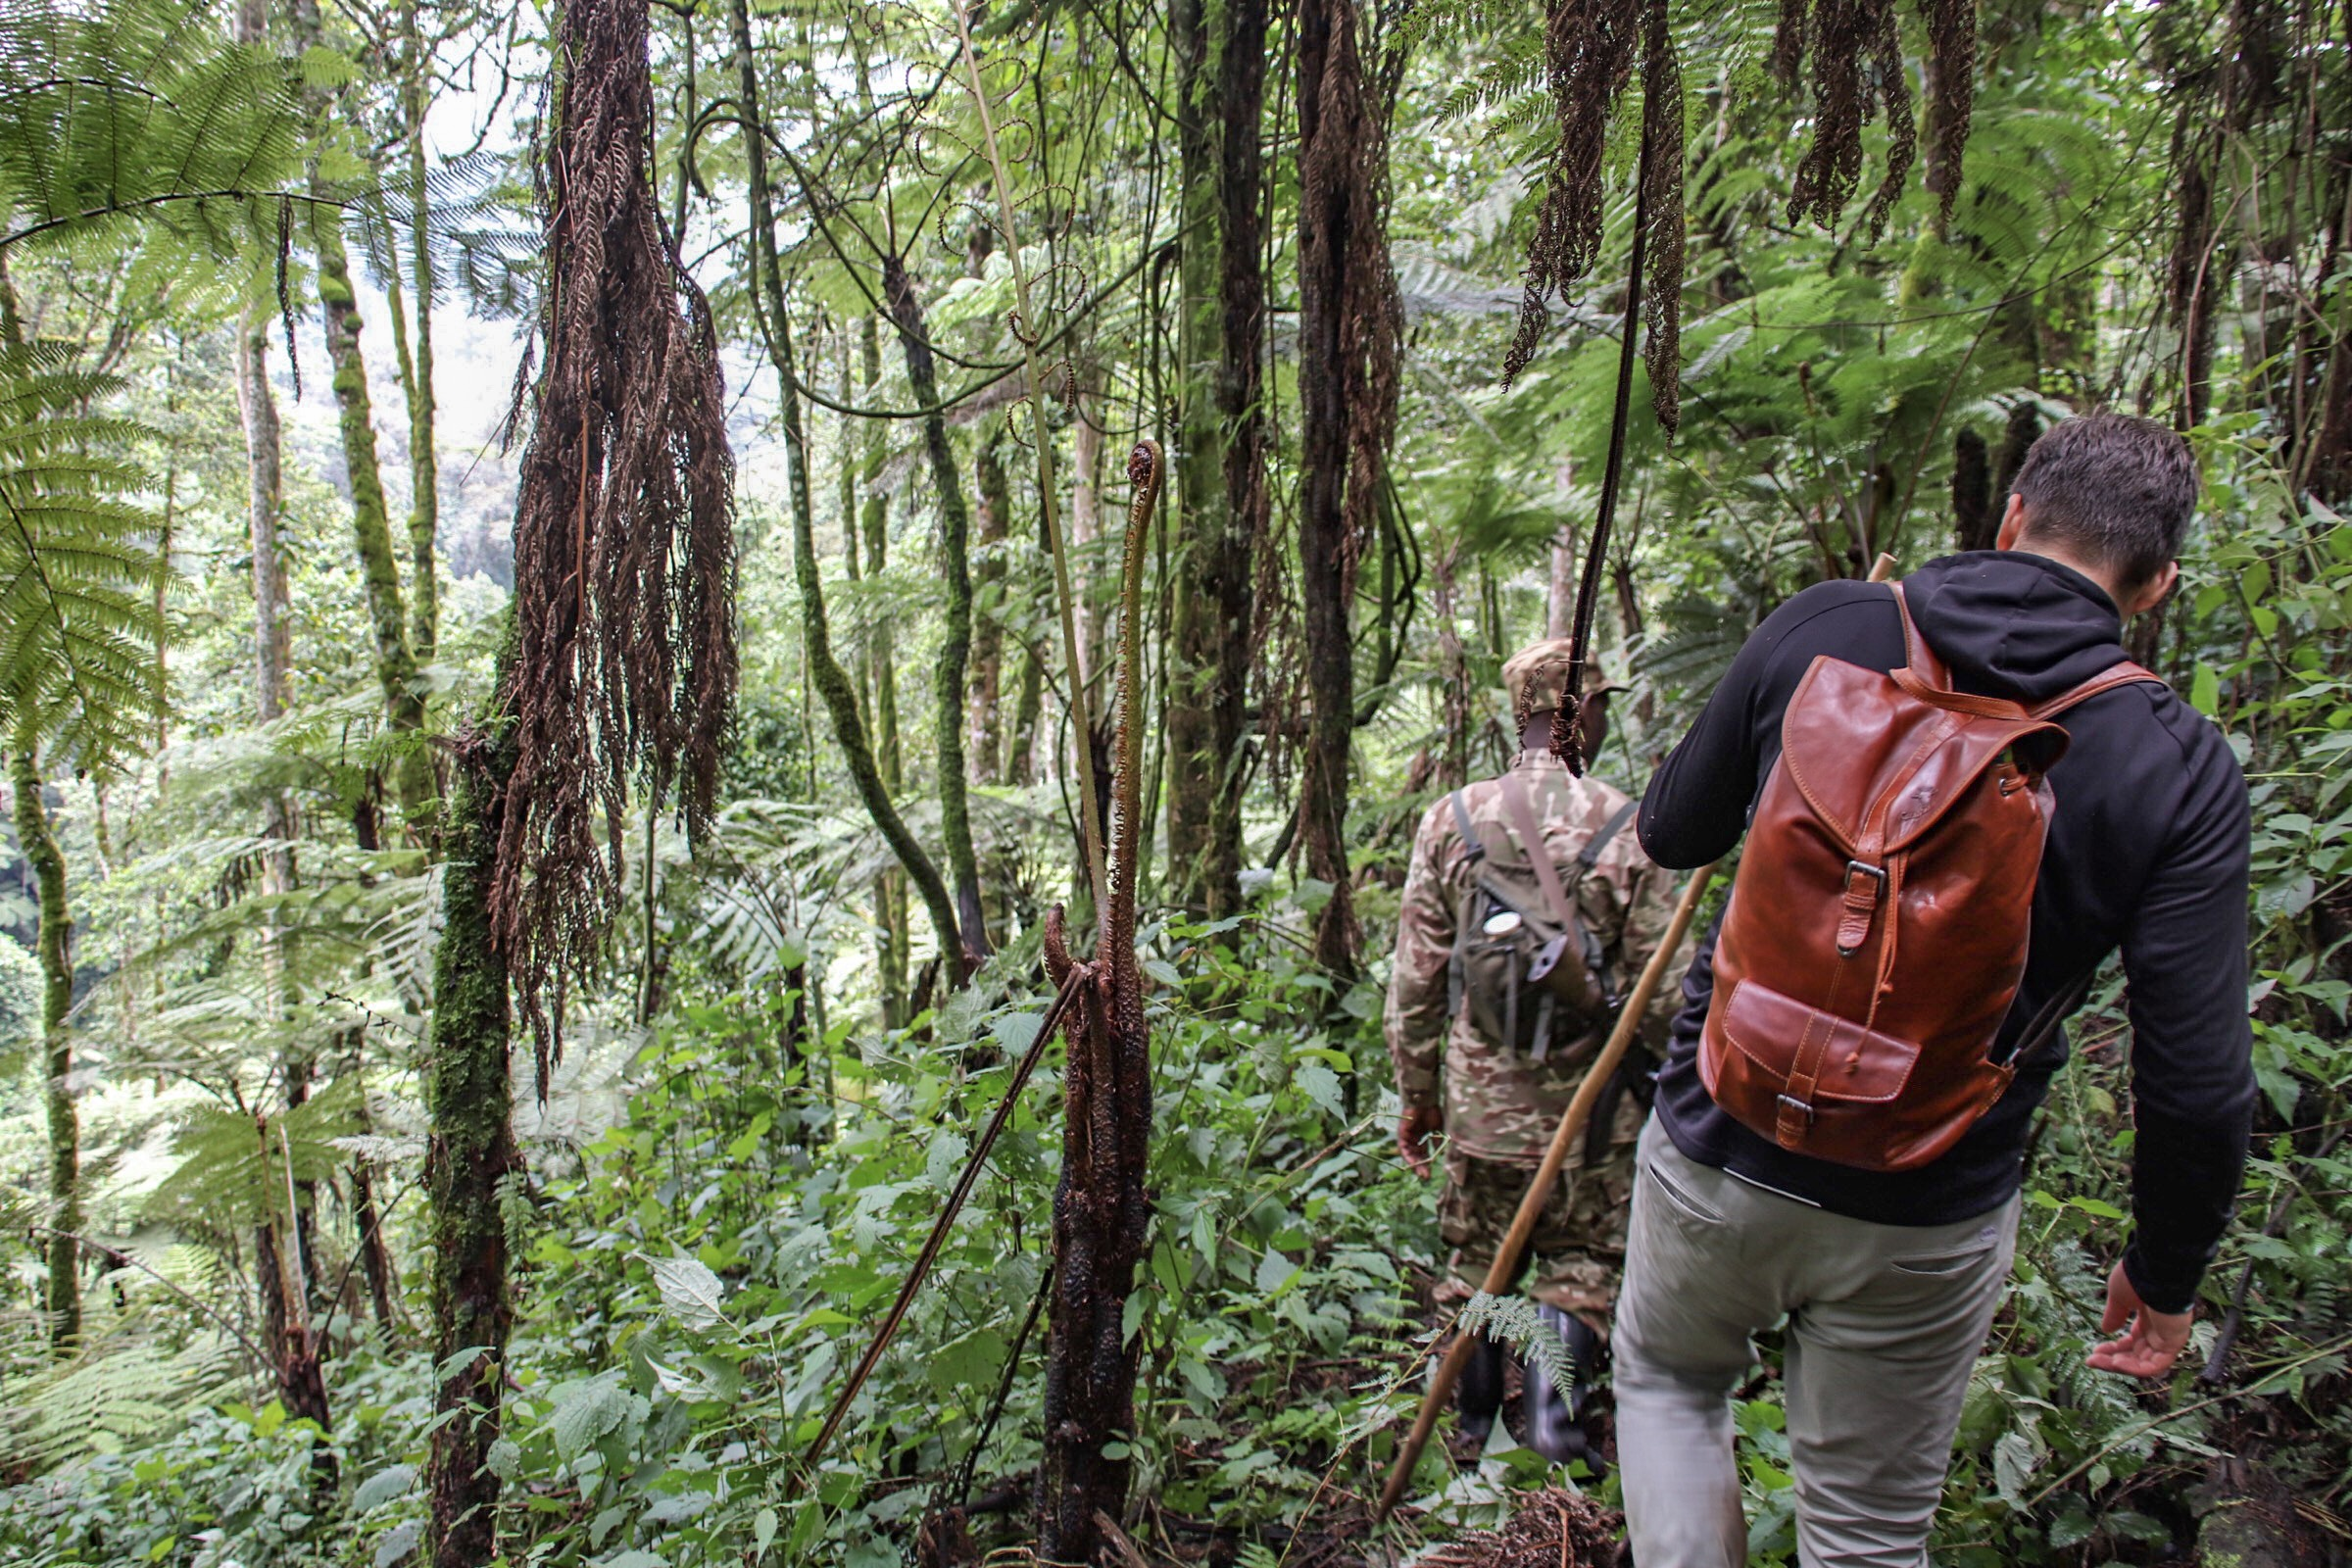 4-Day Pearl of Africa Trip Including Gorilla Trekking Tour 3